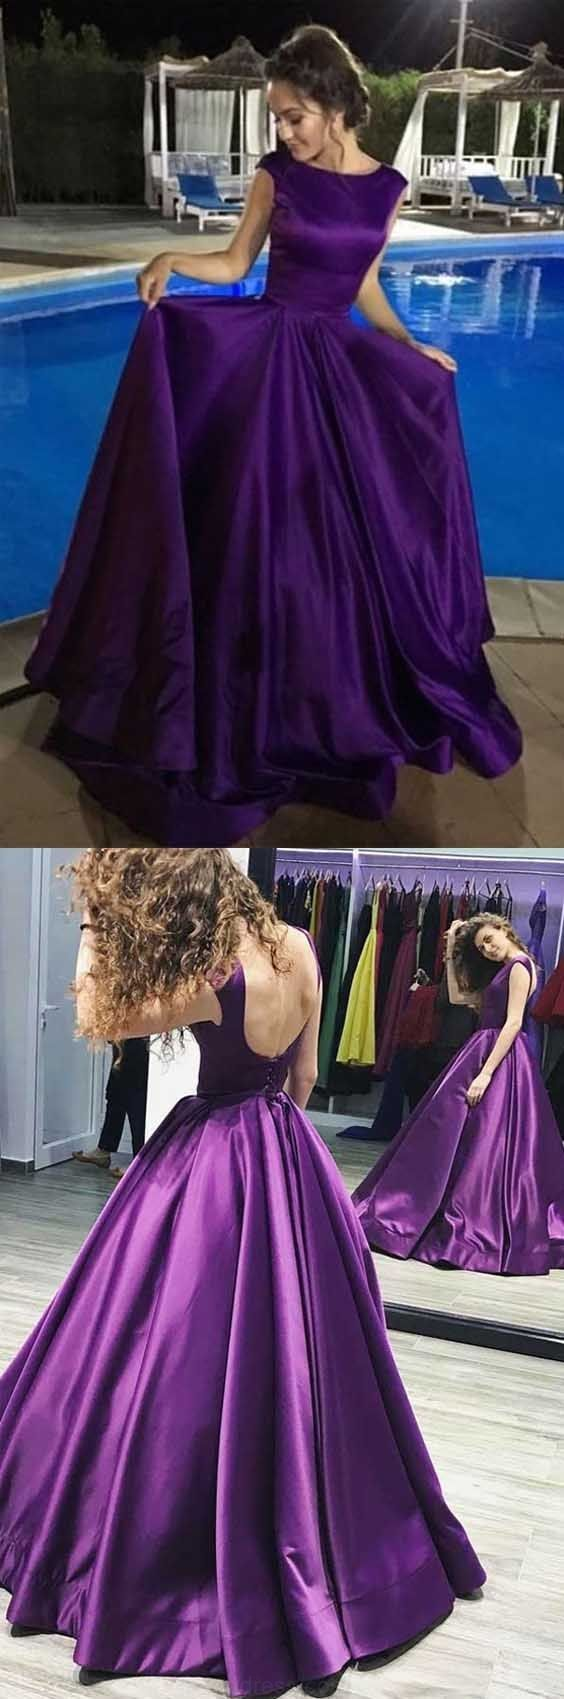 Prom dresses long tulle prom dresses long prom dresses